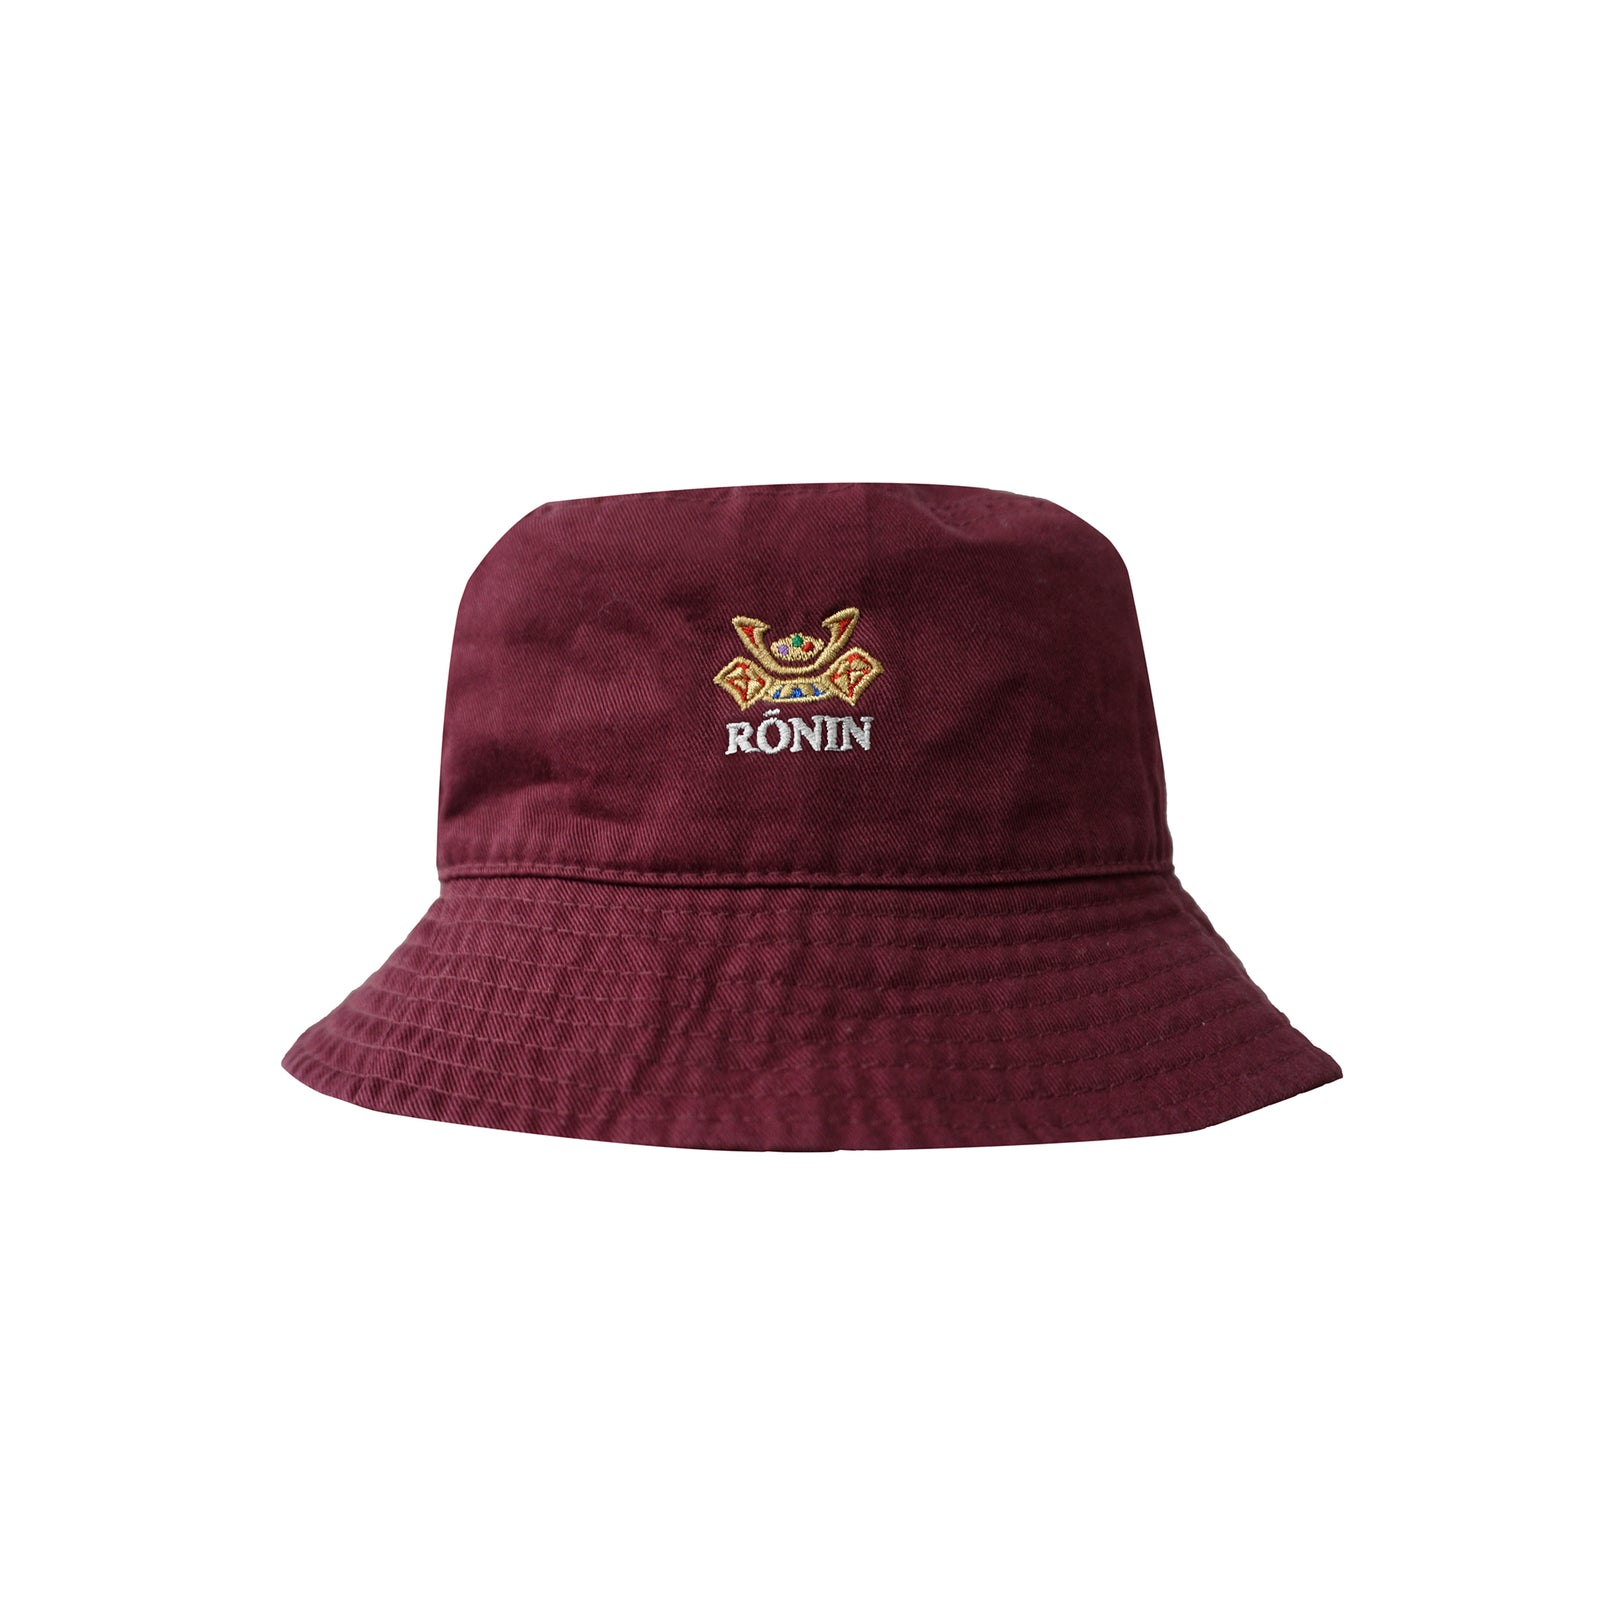 Crowns Bucket Hat - Burgundy